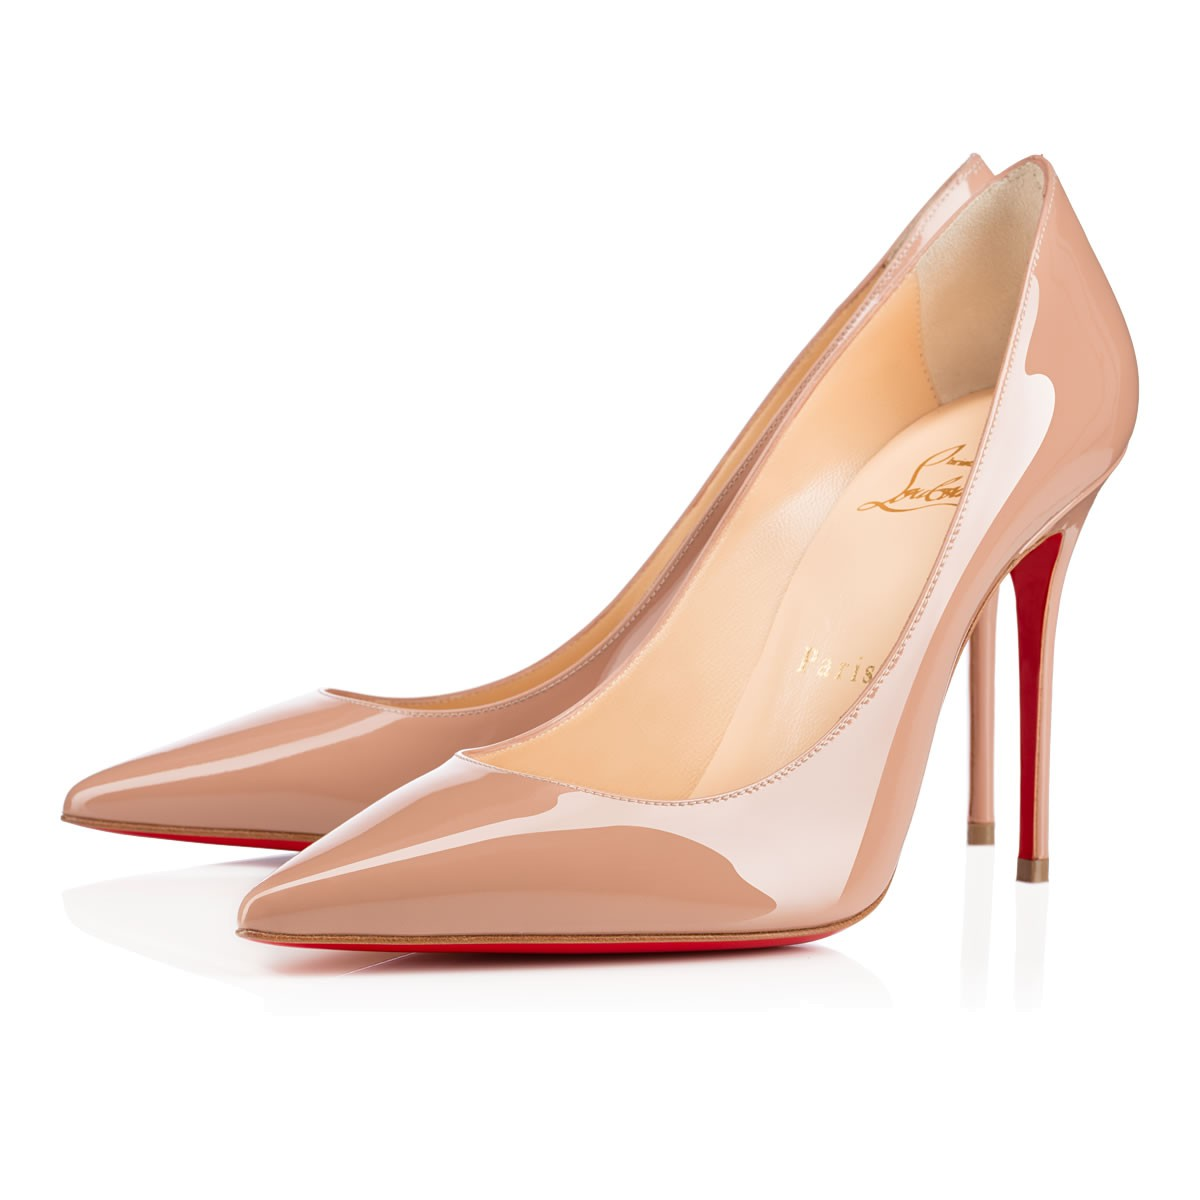 sports shoes 26393 f5586 Kate 100 Nude Patent Leather - Women Shoes - Christian Louboutin